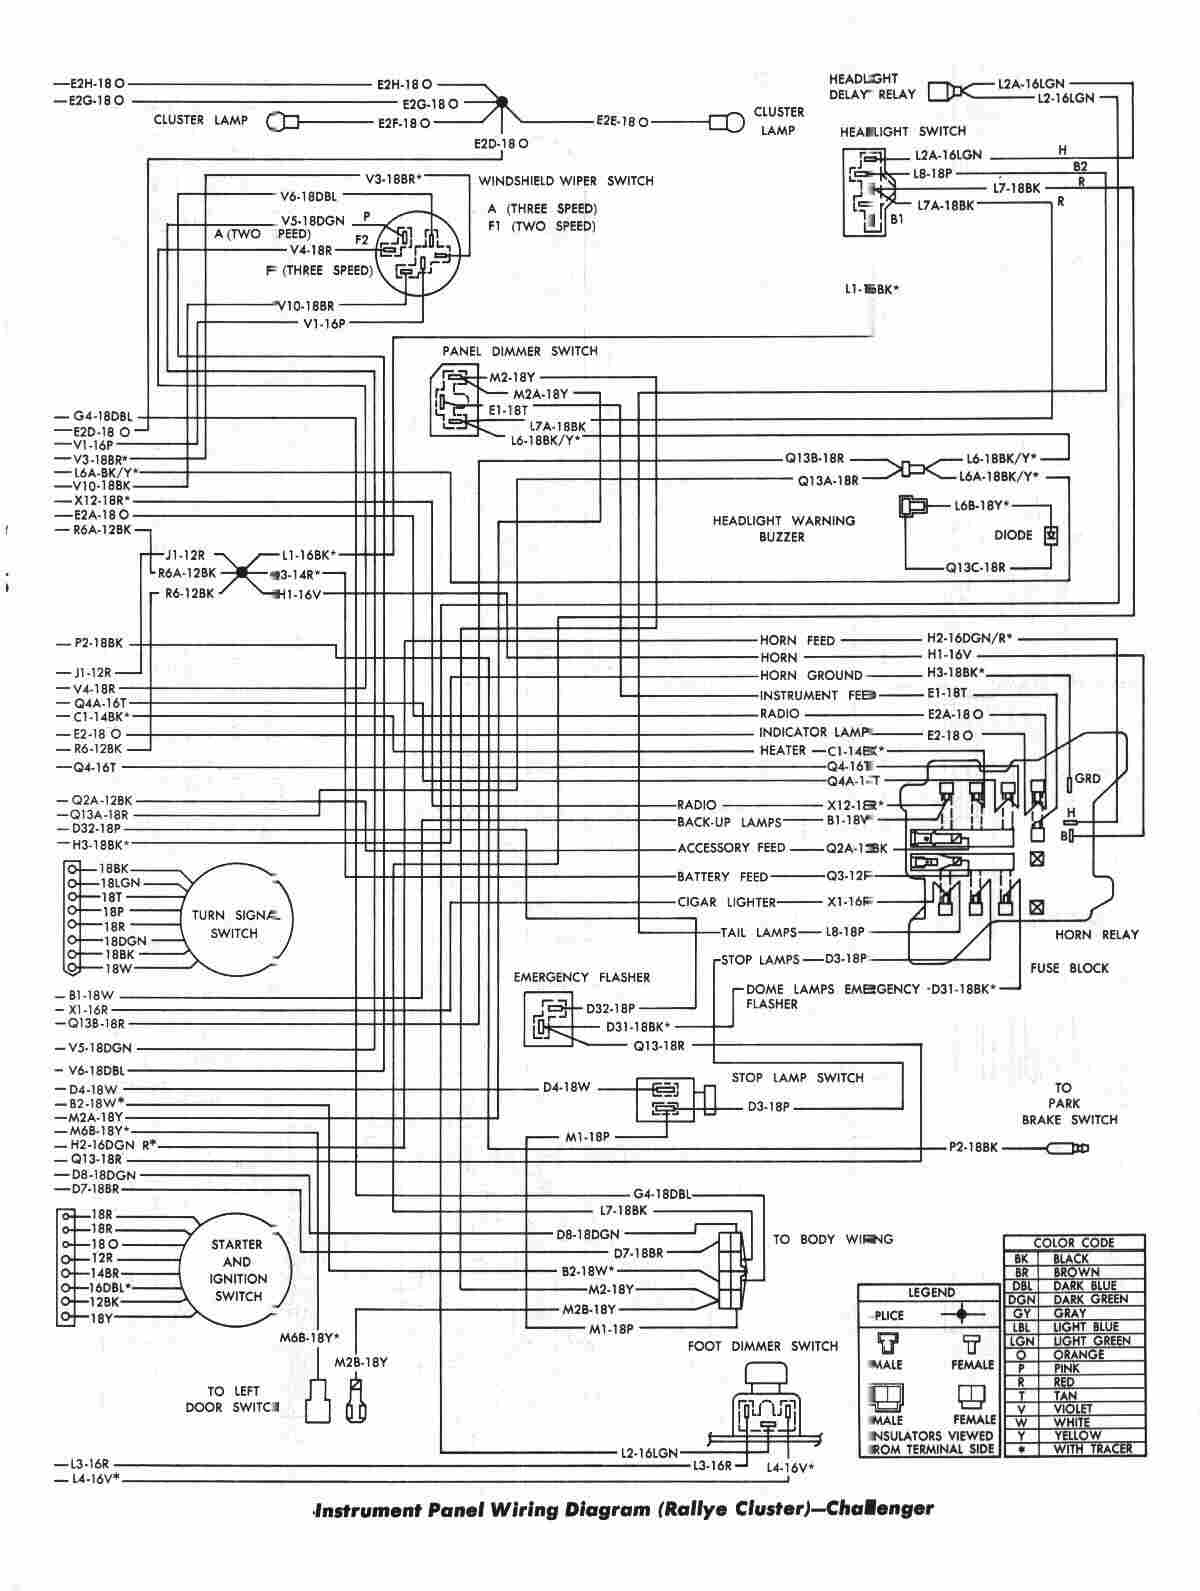 Dodge Challenger 1970 Instrument Panel Wiring Diagram